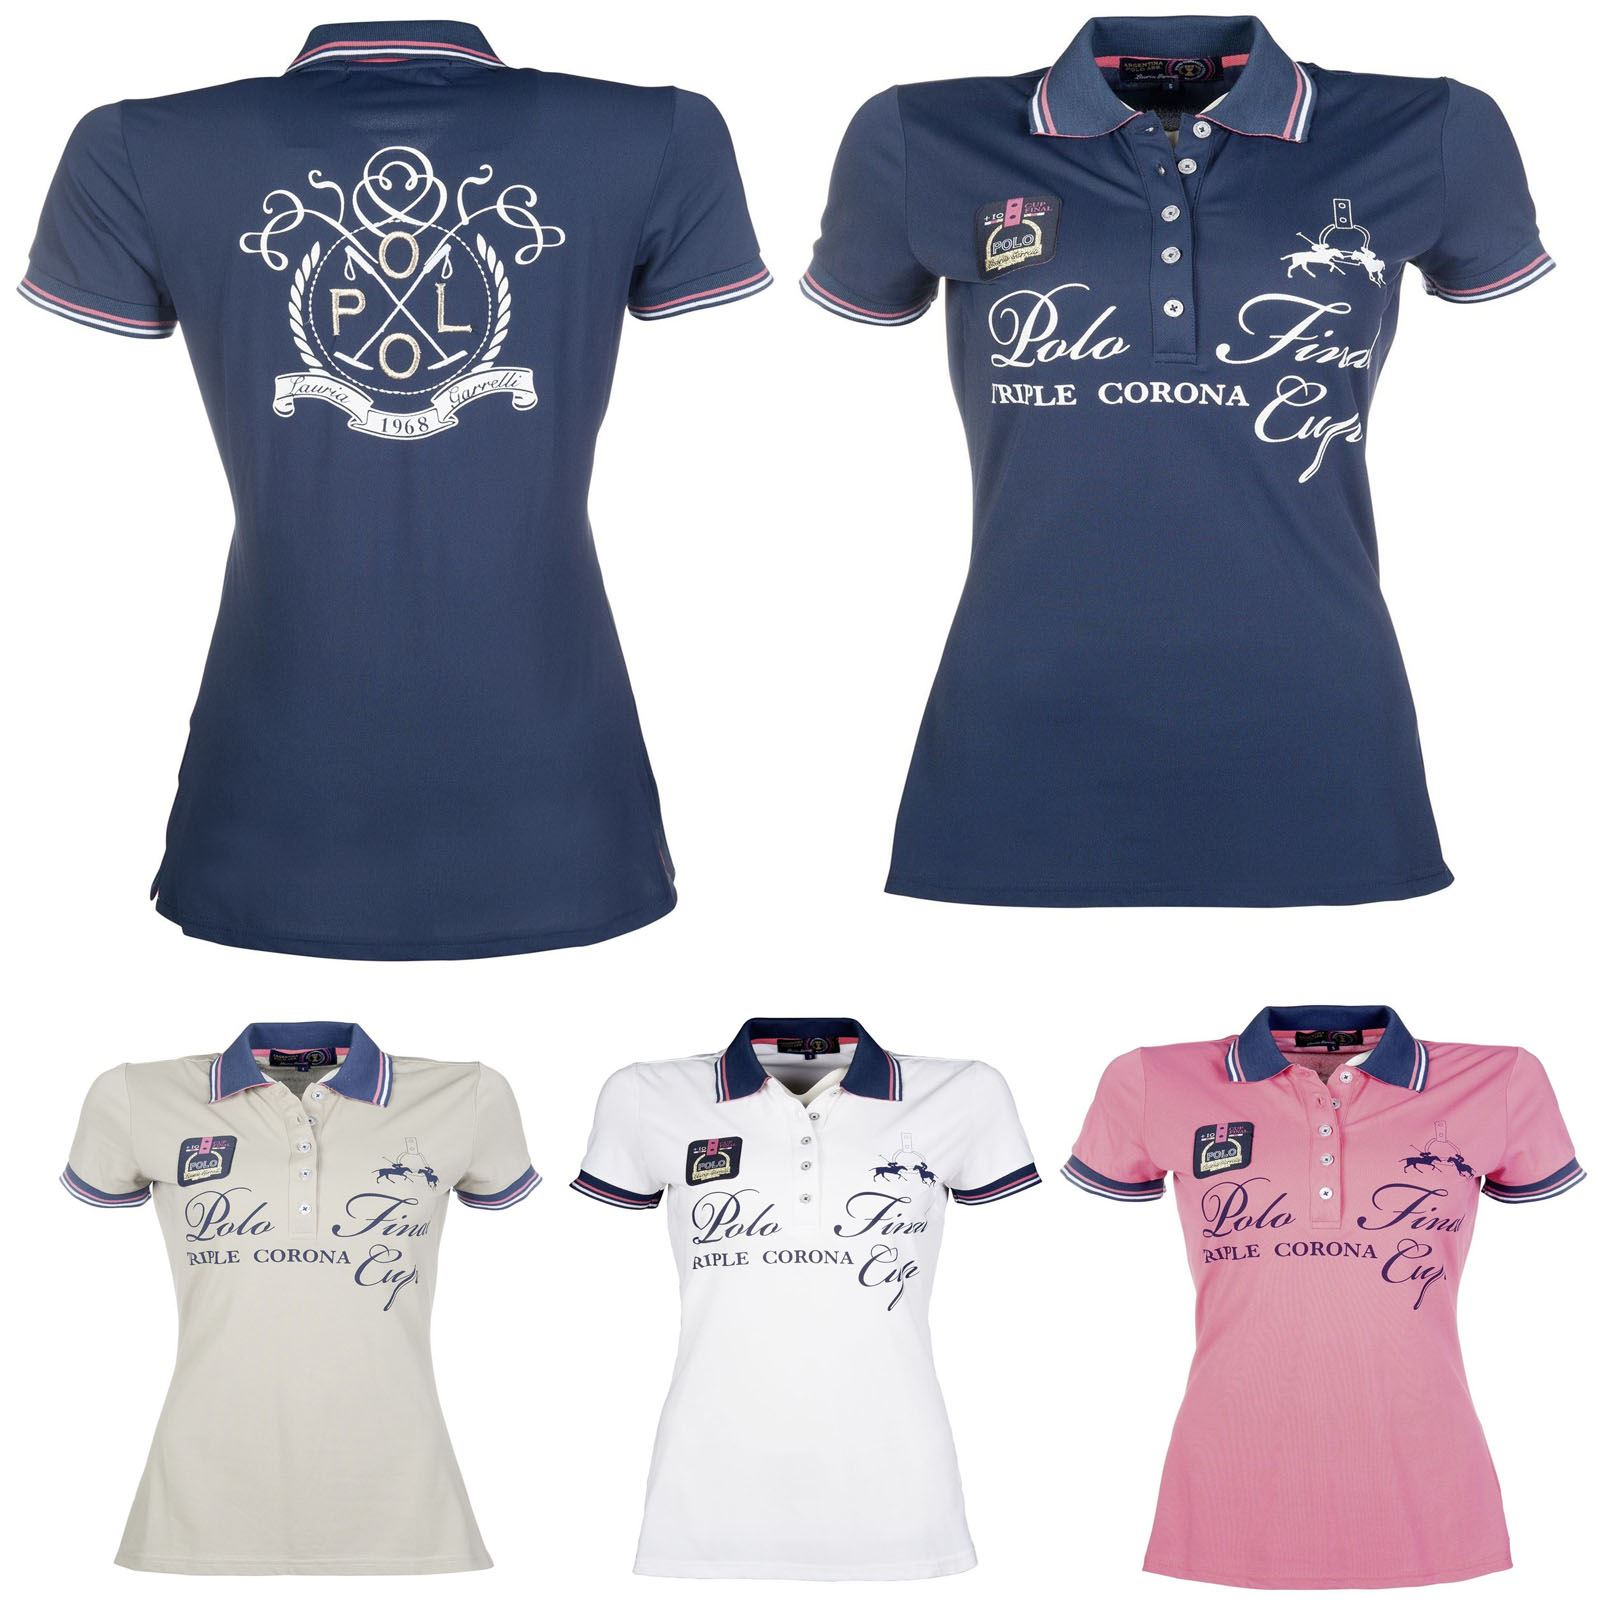 da2ccef3e3a710 Details about Lauria Garrelli Santa Rosa Polo Shirts - Horse Riding  Stretchy Competition Event